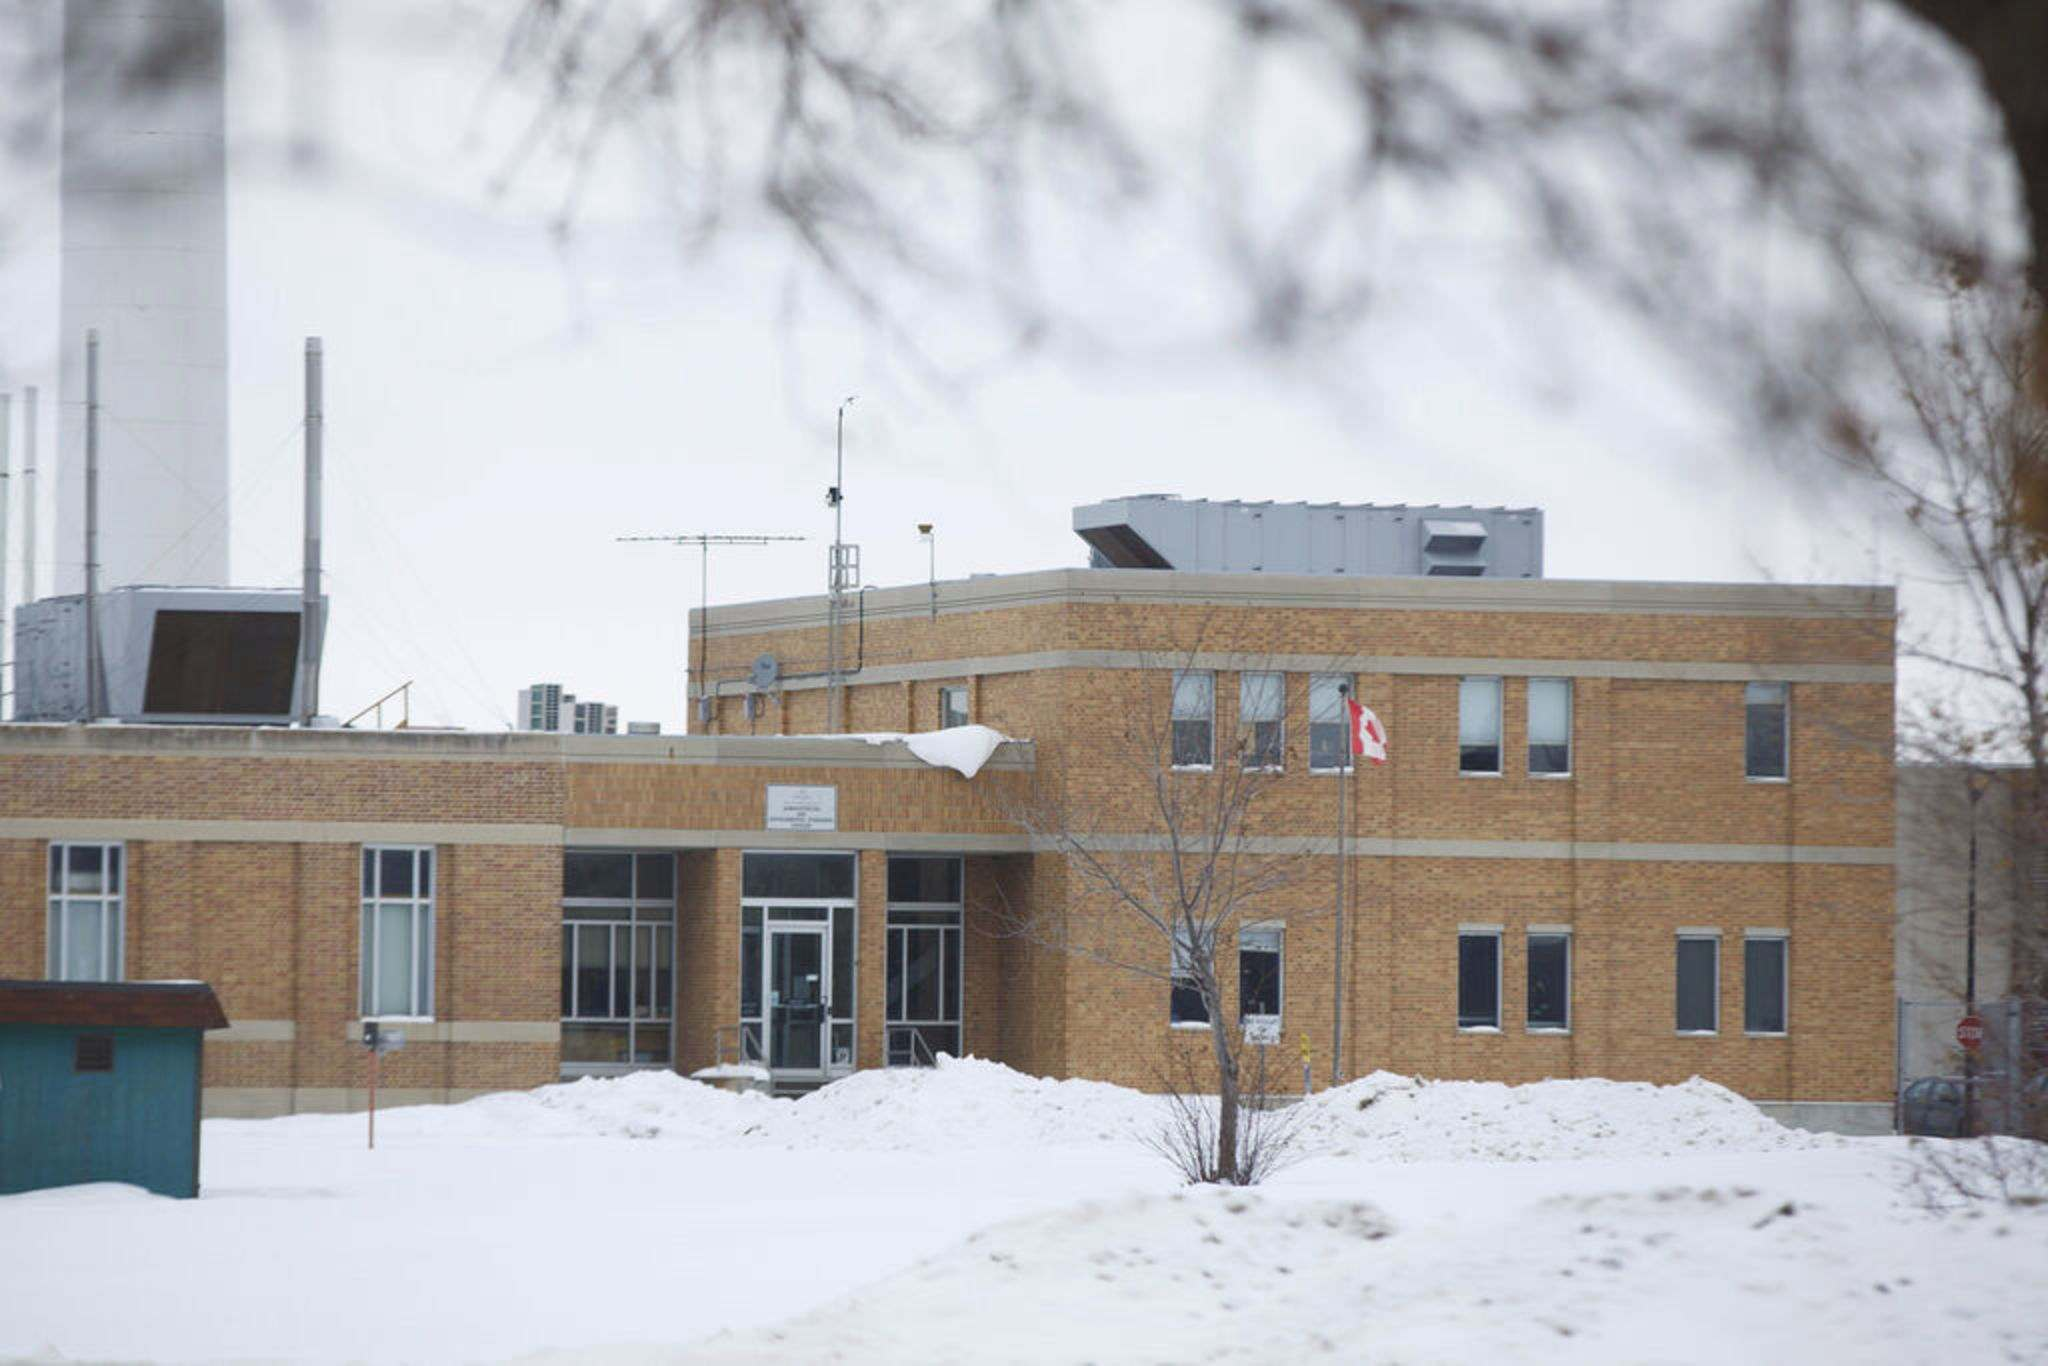 MIKE DEAL / WINNIPEG FREE PRESS FILES</p><p>A $1.8-billion upgrade is planned for Winnipeg's North End Sewage Treatment Plant by 2028.</p>